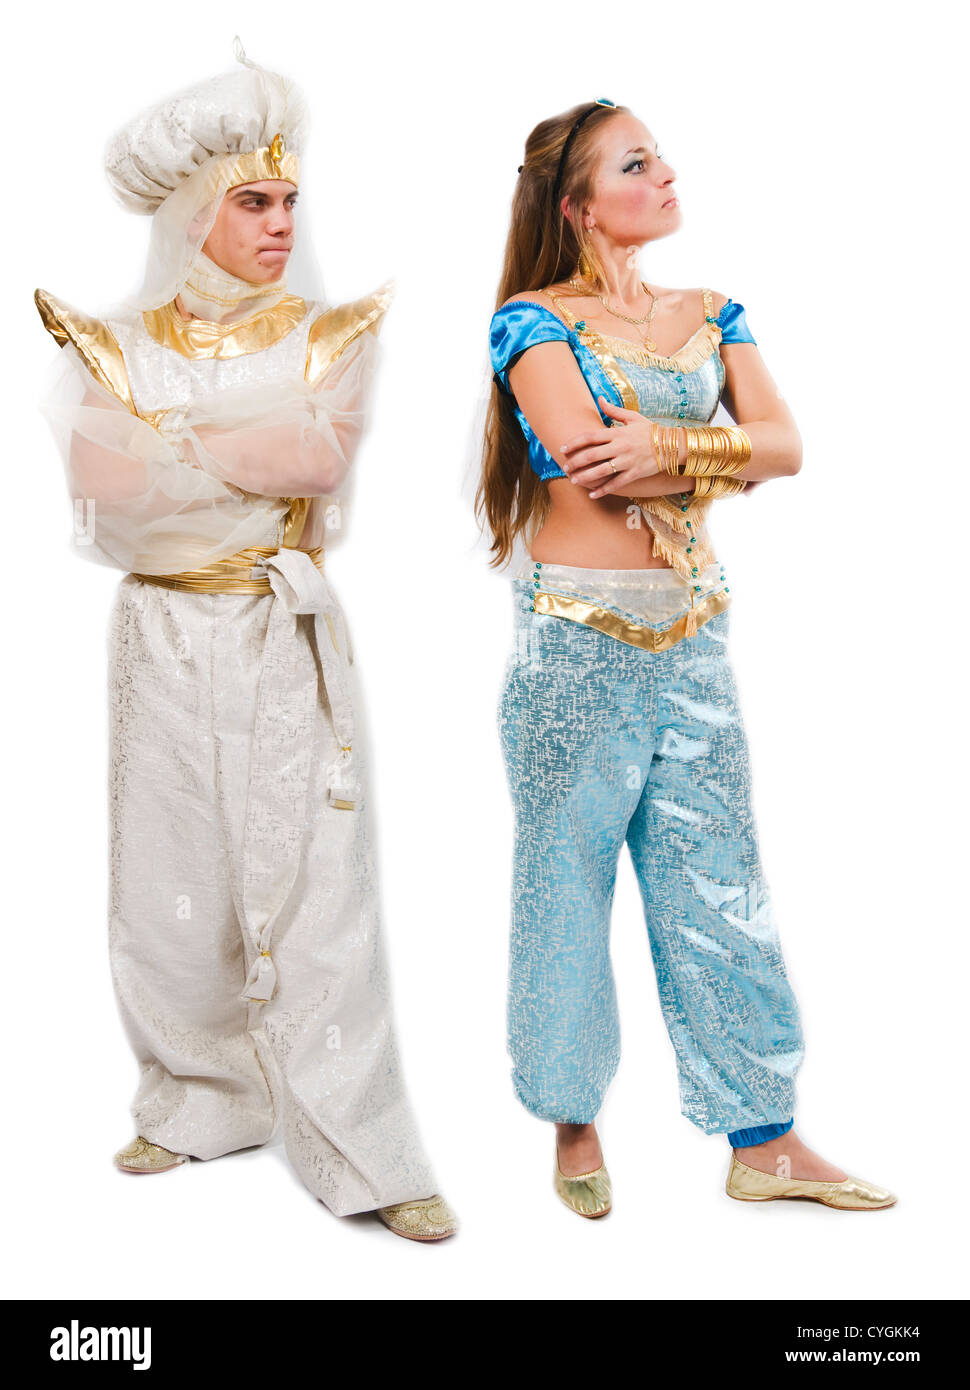 Aladdin and Jasmine - man and woman wearing costume of Arabian Nights prince and princess  sc 1 st  Alamy & Aladdin and Jasmine - man and woman wearing costume of Arabian ...